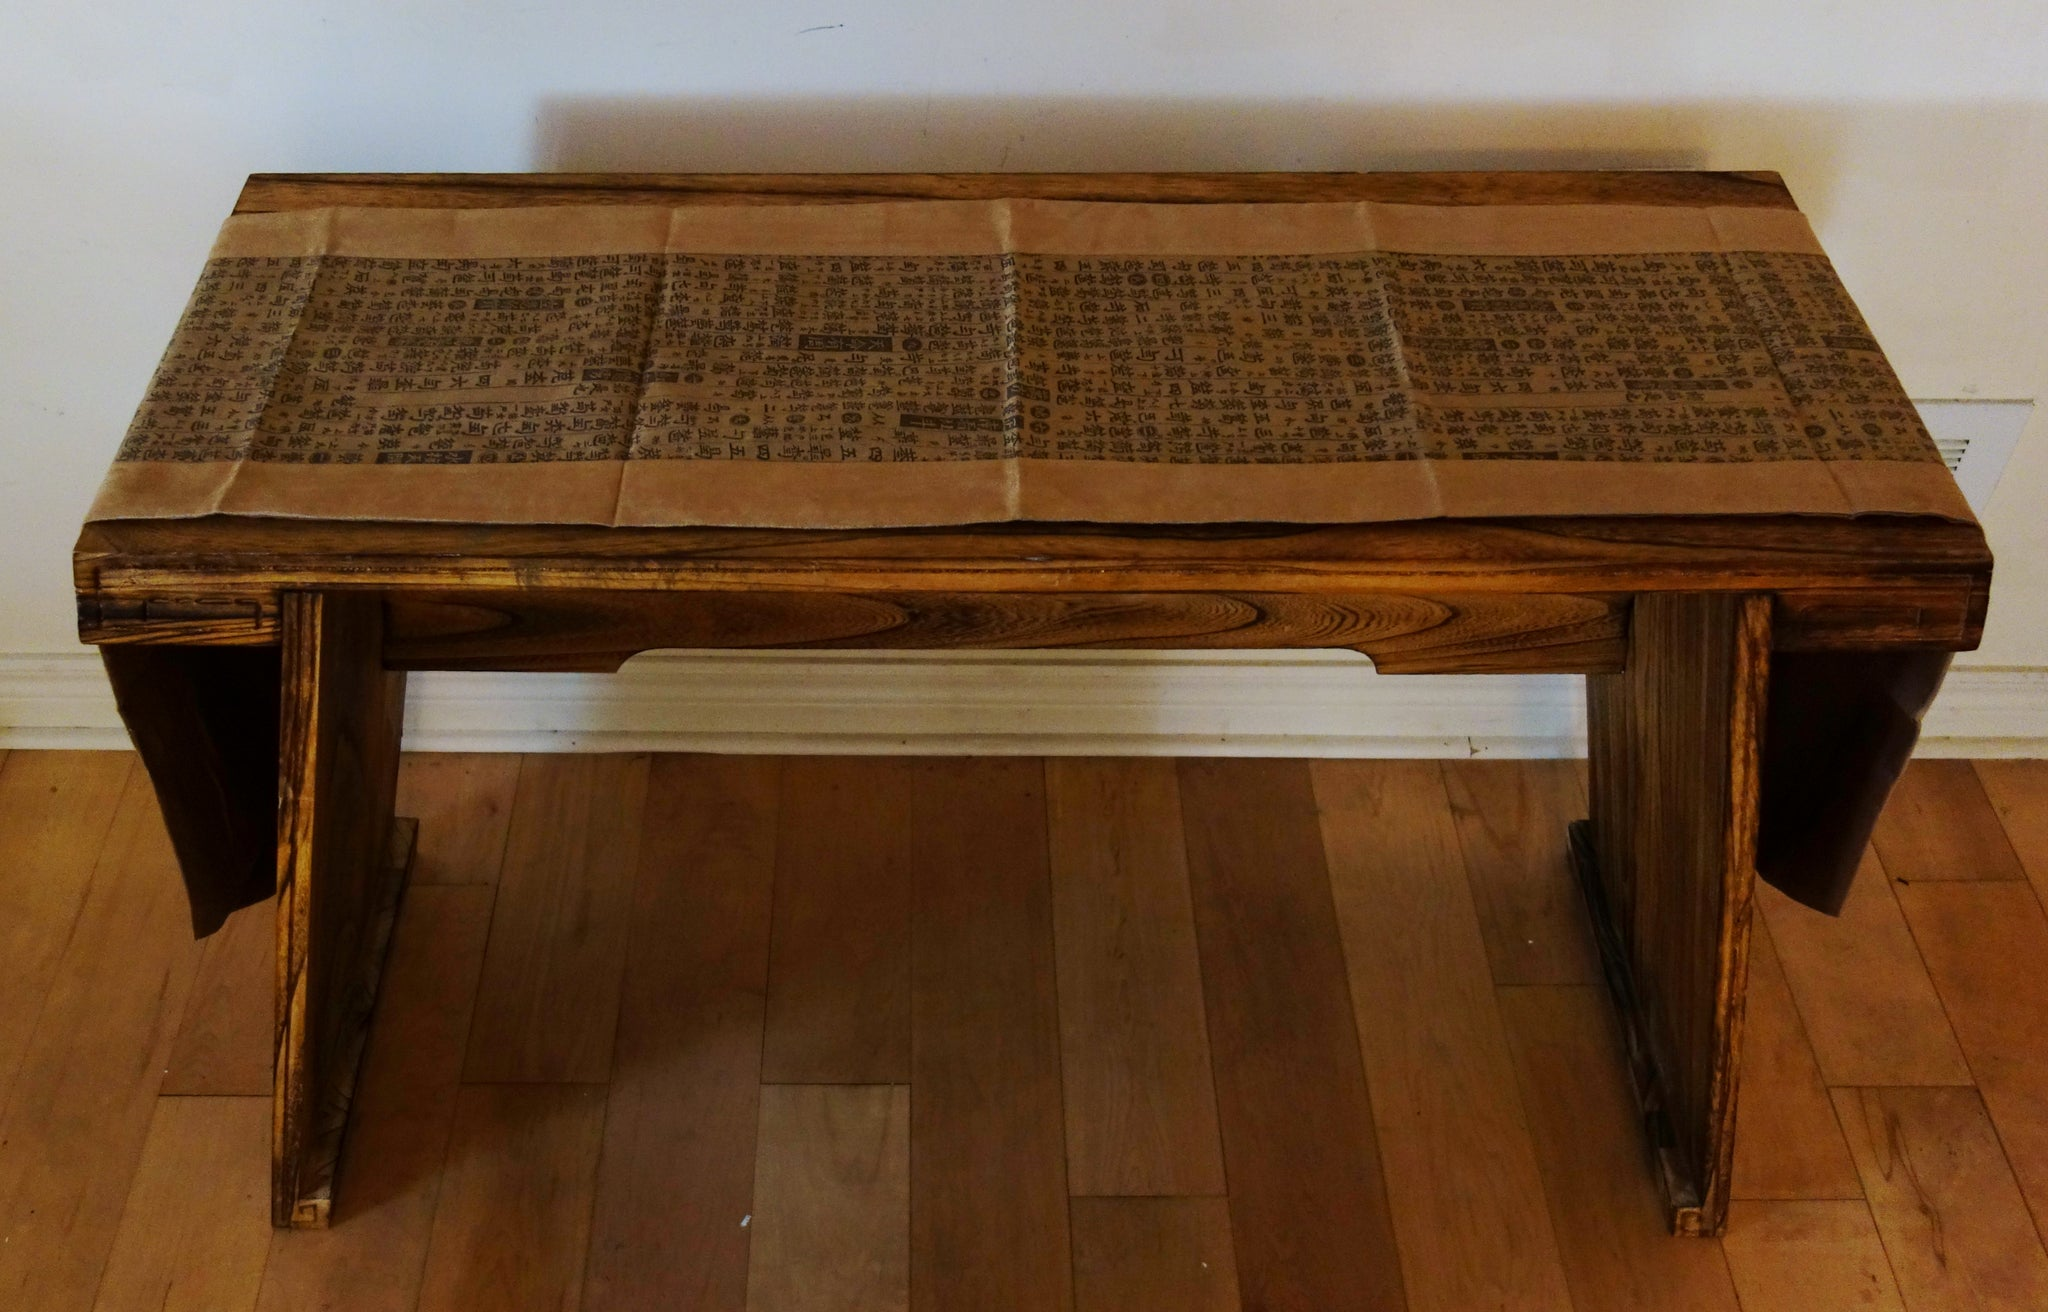 Guqin Table Cover 古琴桌旗